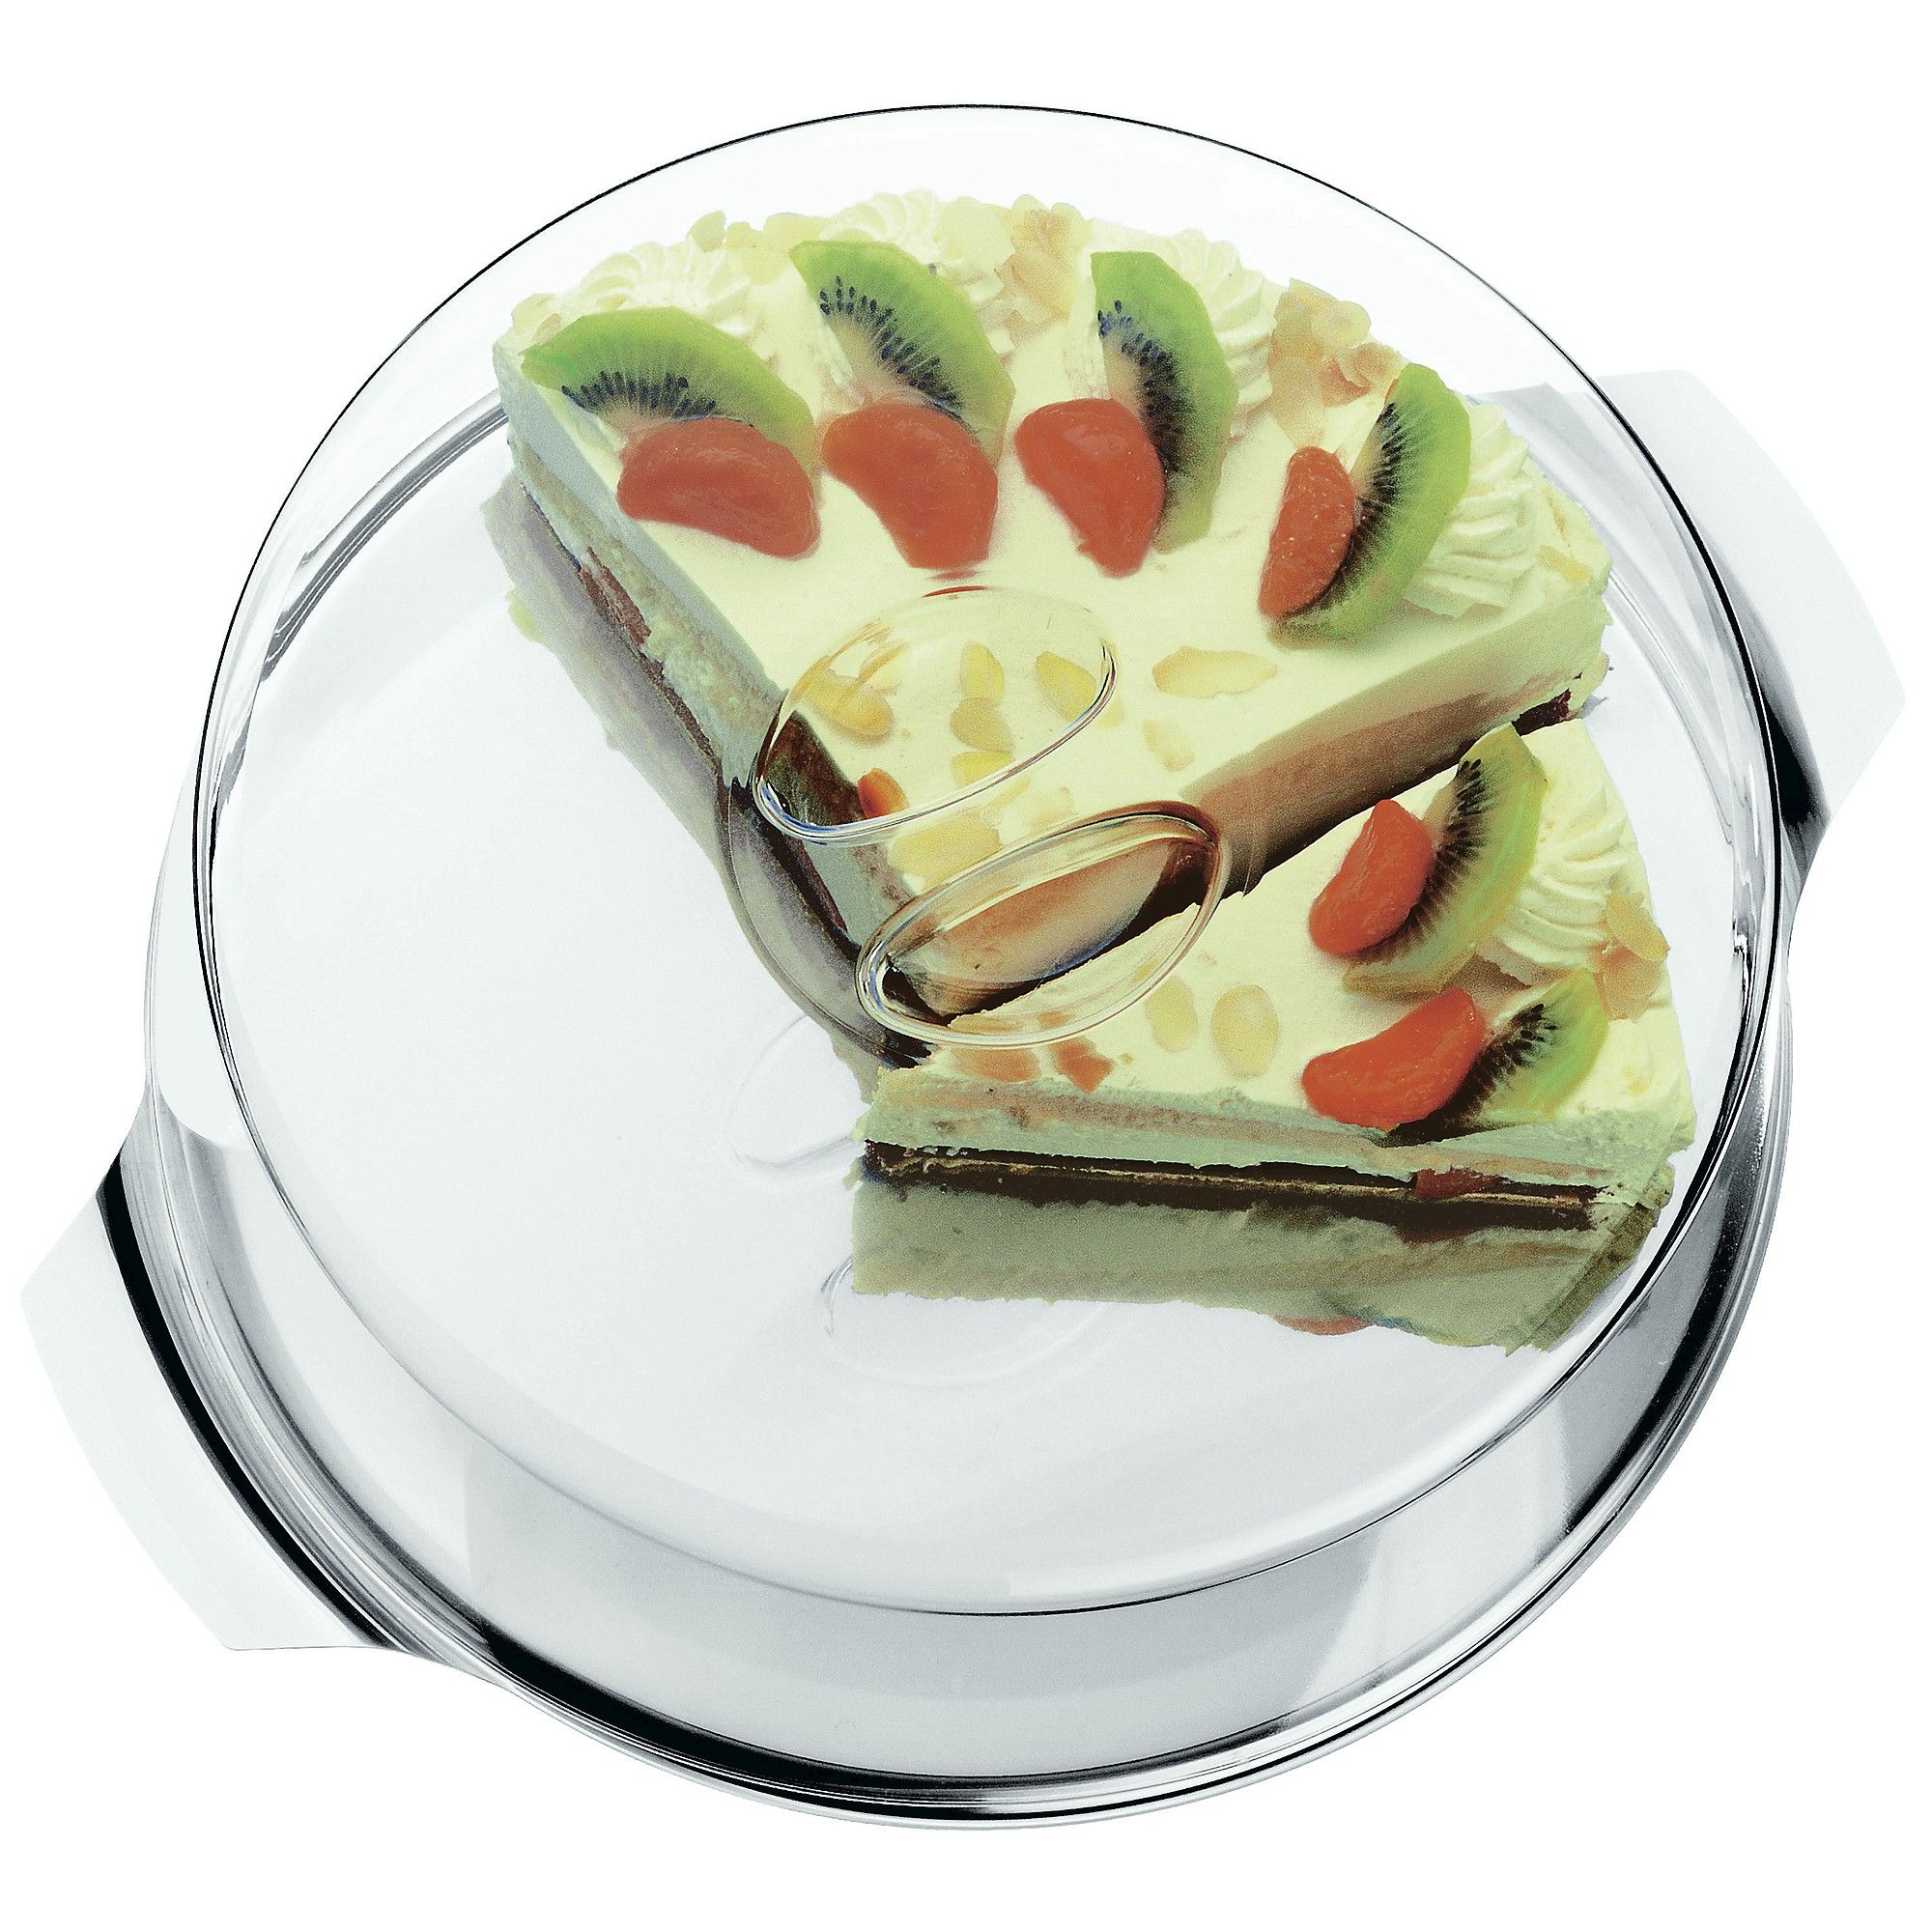 WMF cake plate and platter with Cromargan® stainless steel 18/10 and ...